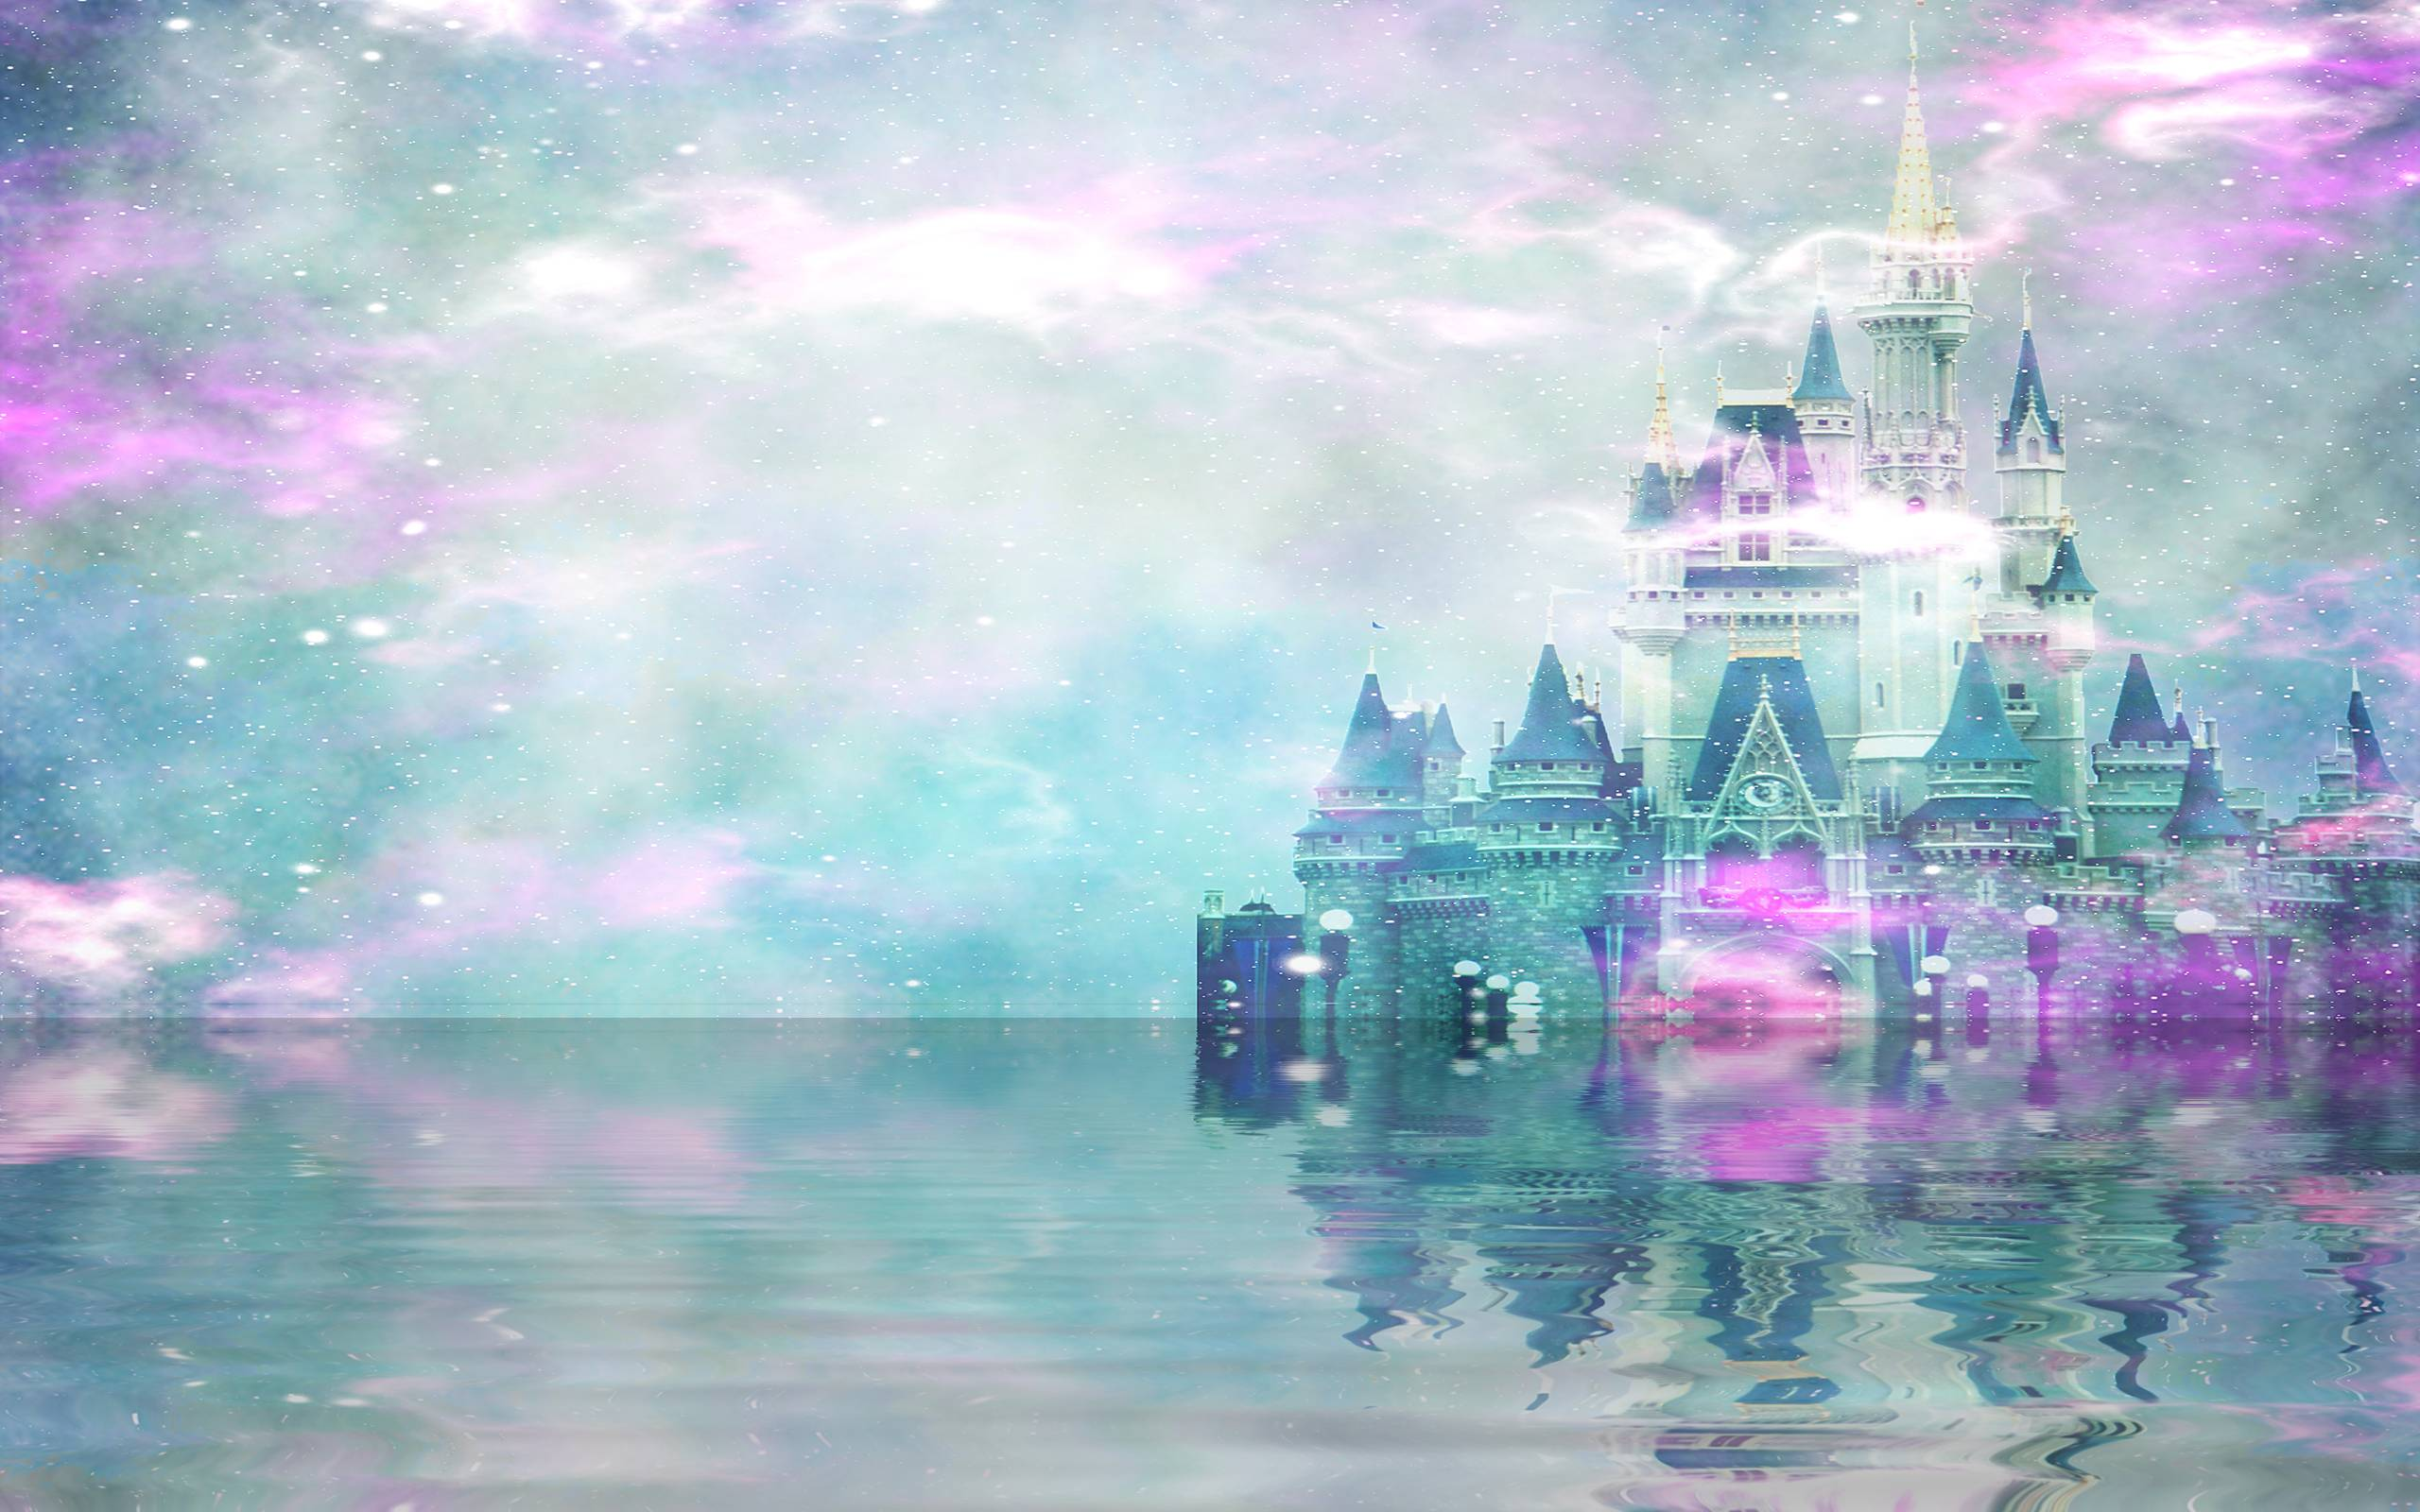 Drawn wallpaper castle Fairytale abstract & Photo Wallpaper